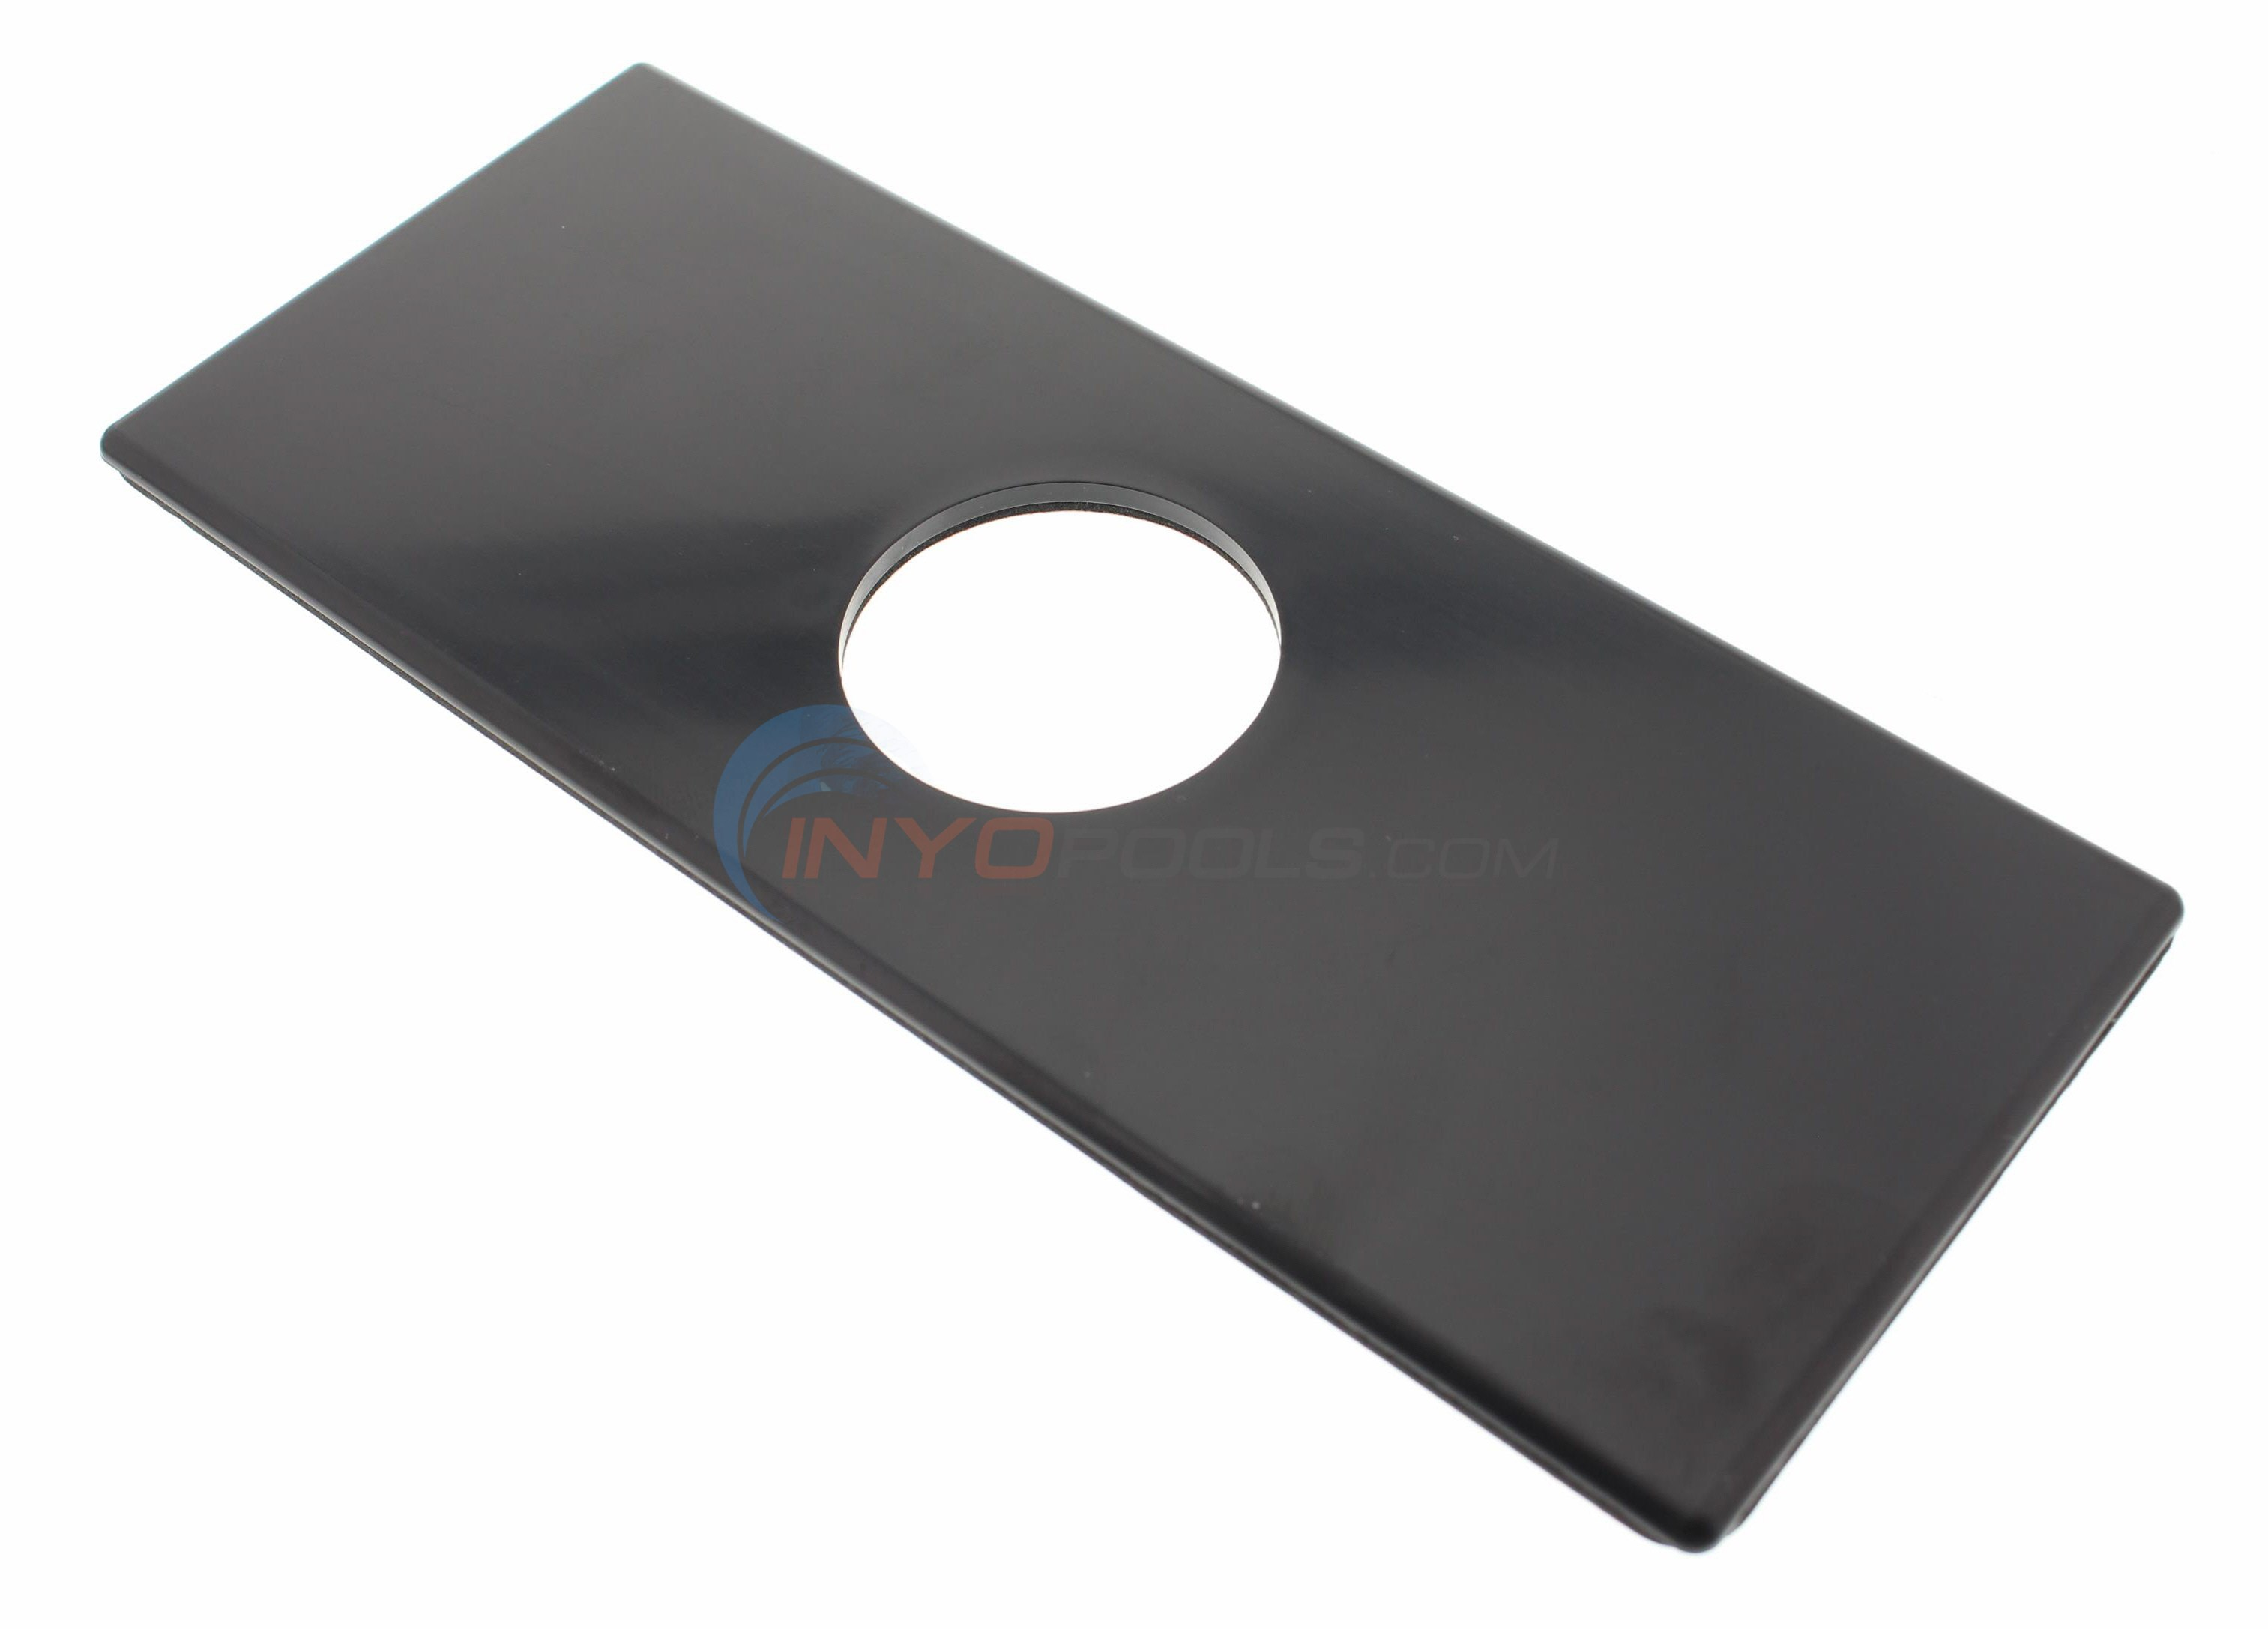 Topside Extension Plate, United Spas